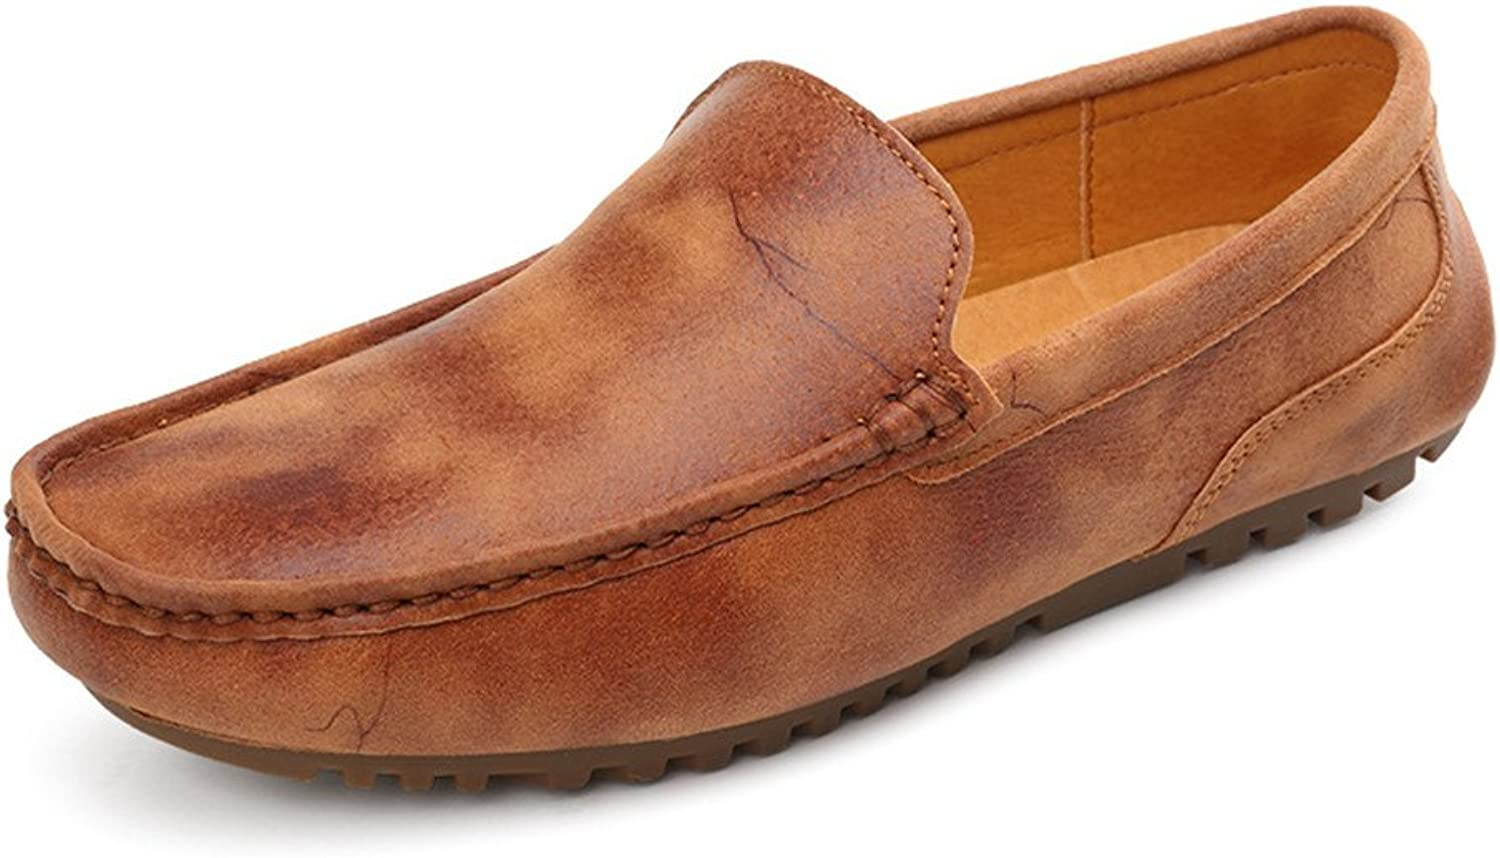 Z.L.F Oxford shoes Men Driving Penny Loafers Genuine OX Leather Boat Moccasins Flat Soft Sole Formal shoes